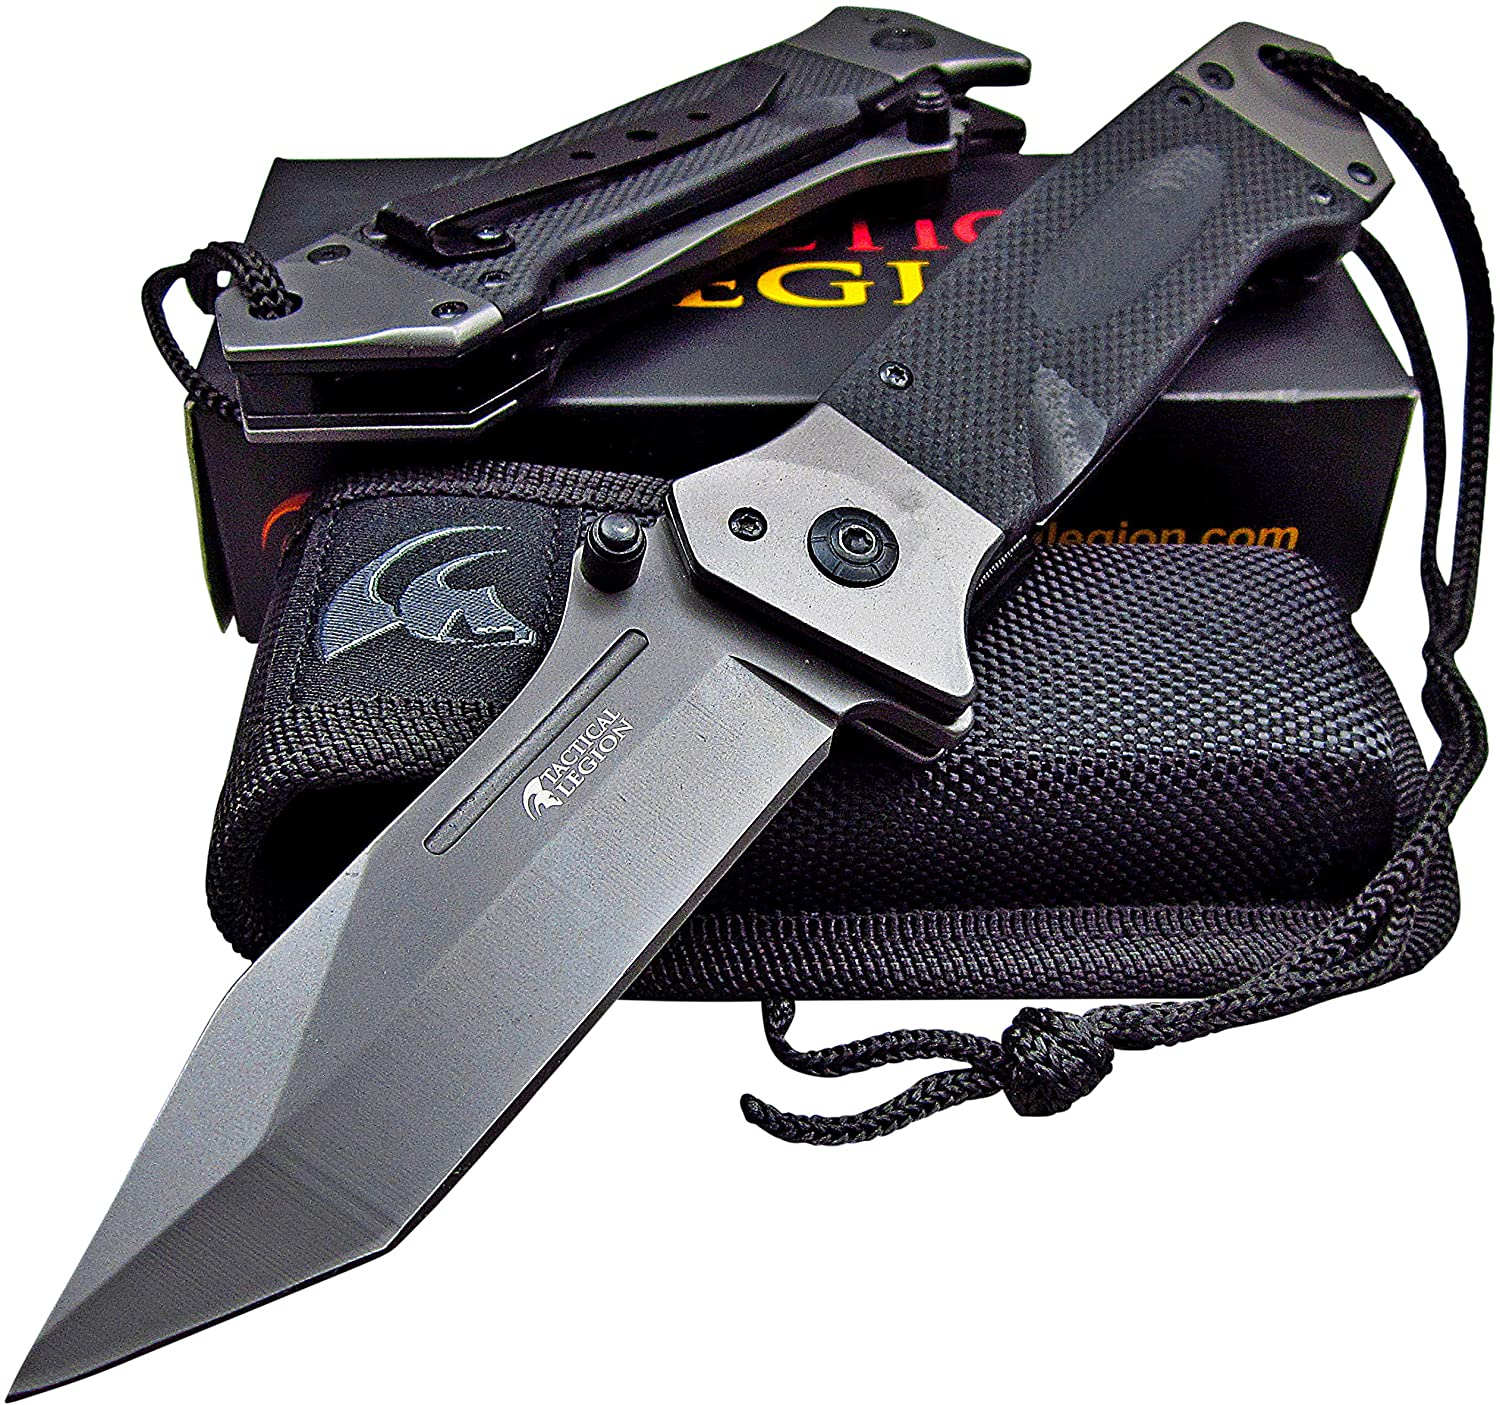 Tactical Legion Heavy Duty Folding Pocket Knife with Sheath: Fast One Hand Opening, 8Cr13MoV Razor Sharp Blade, Great for Outdoor Work Survival Camping Hiking Hunting